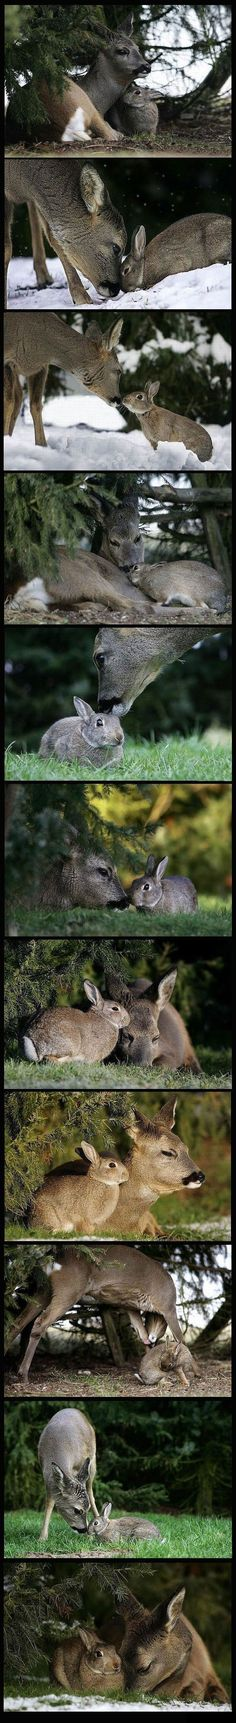 Bambi and Thumper